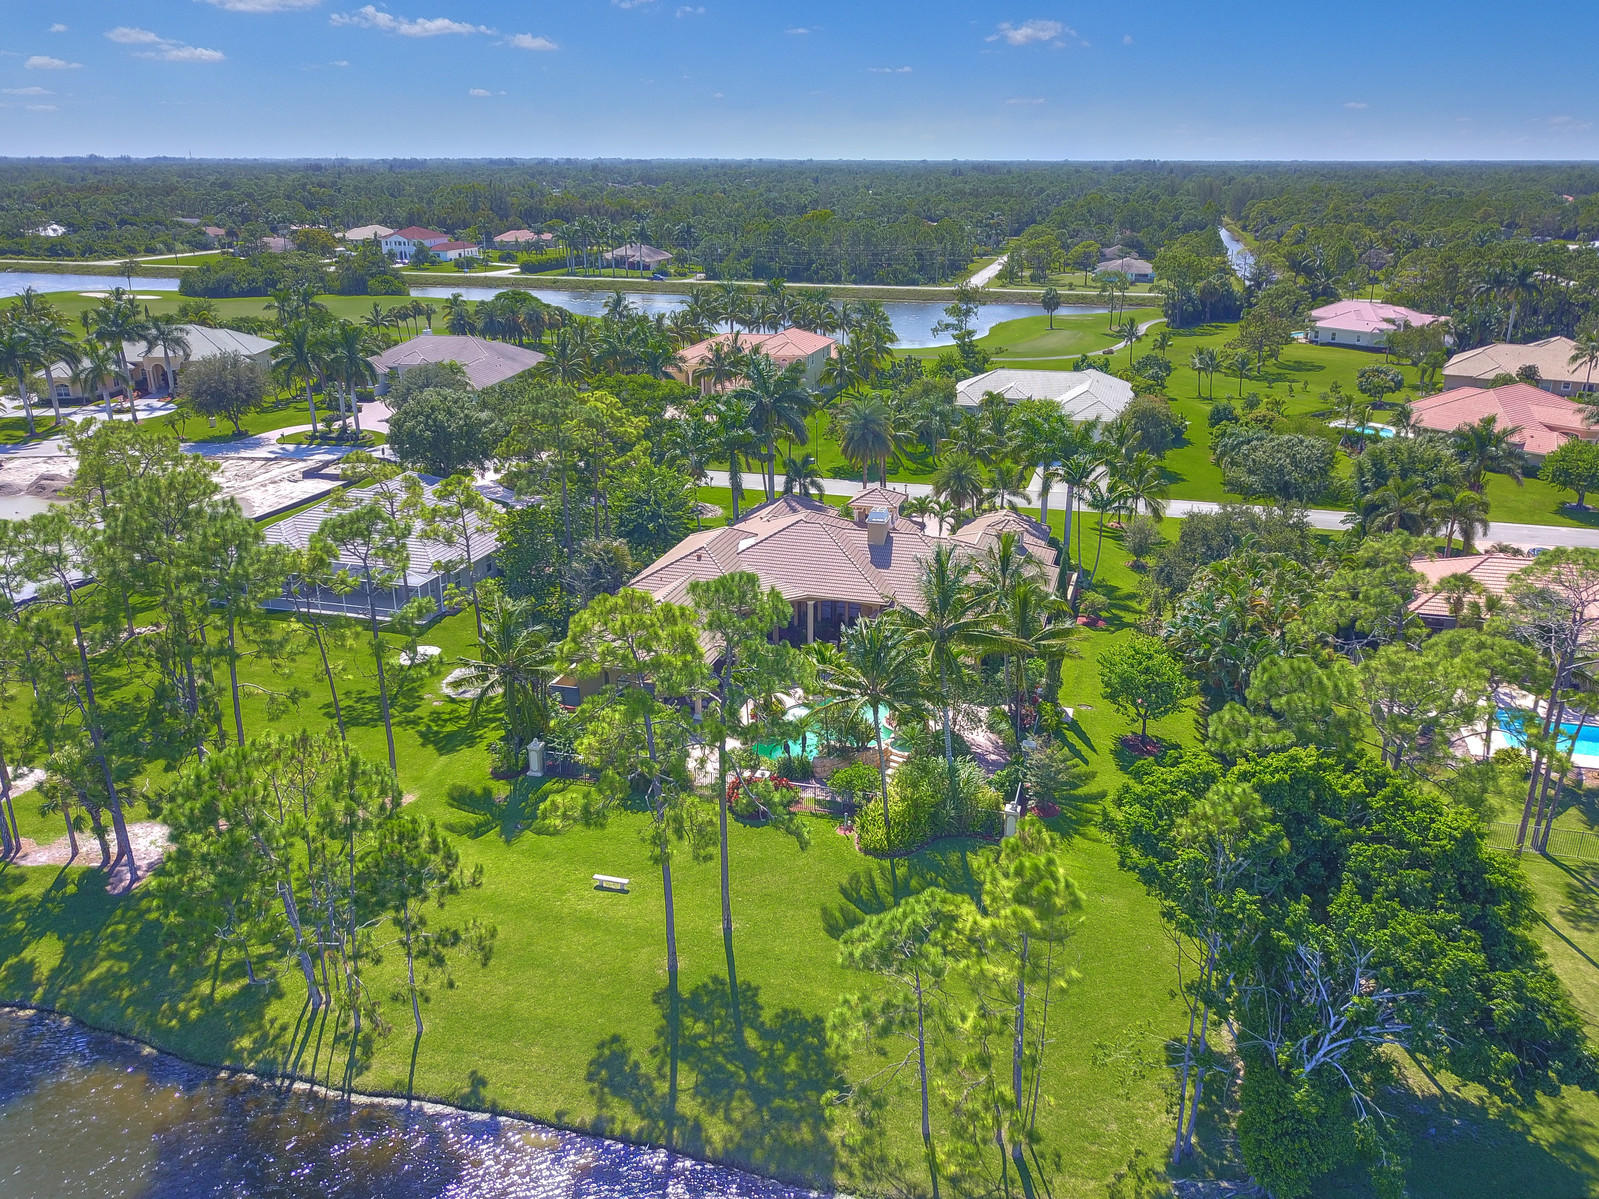 BAY HILL ESTATES PALM BEACH GARDENS FLORIDA